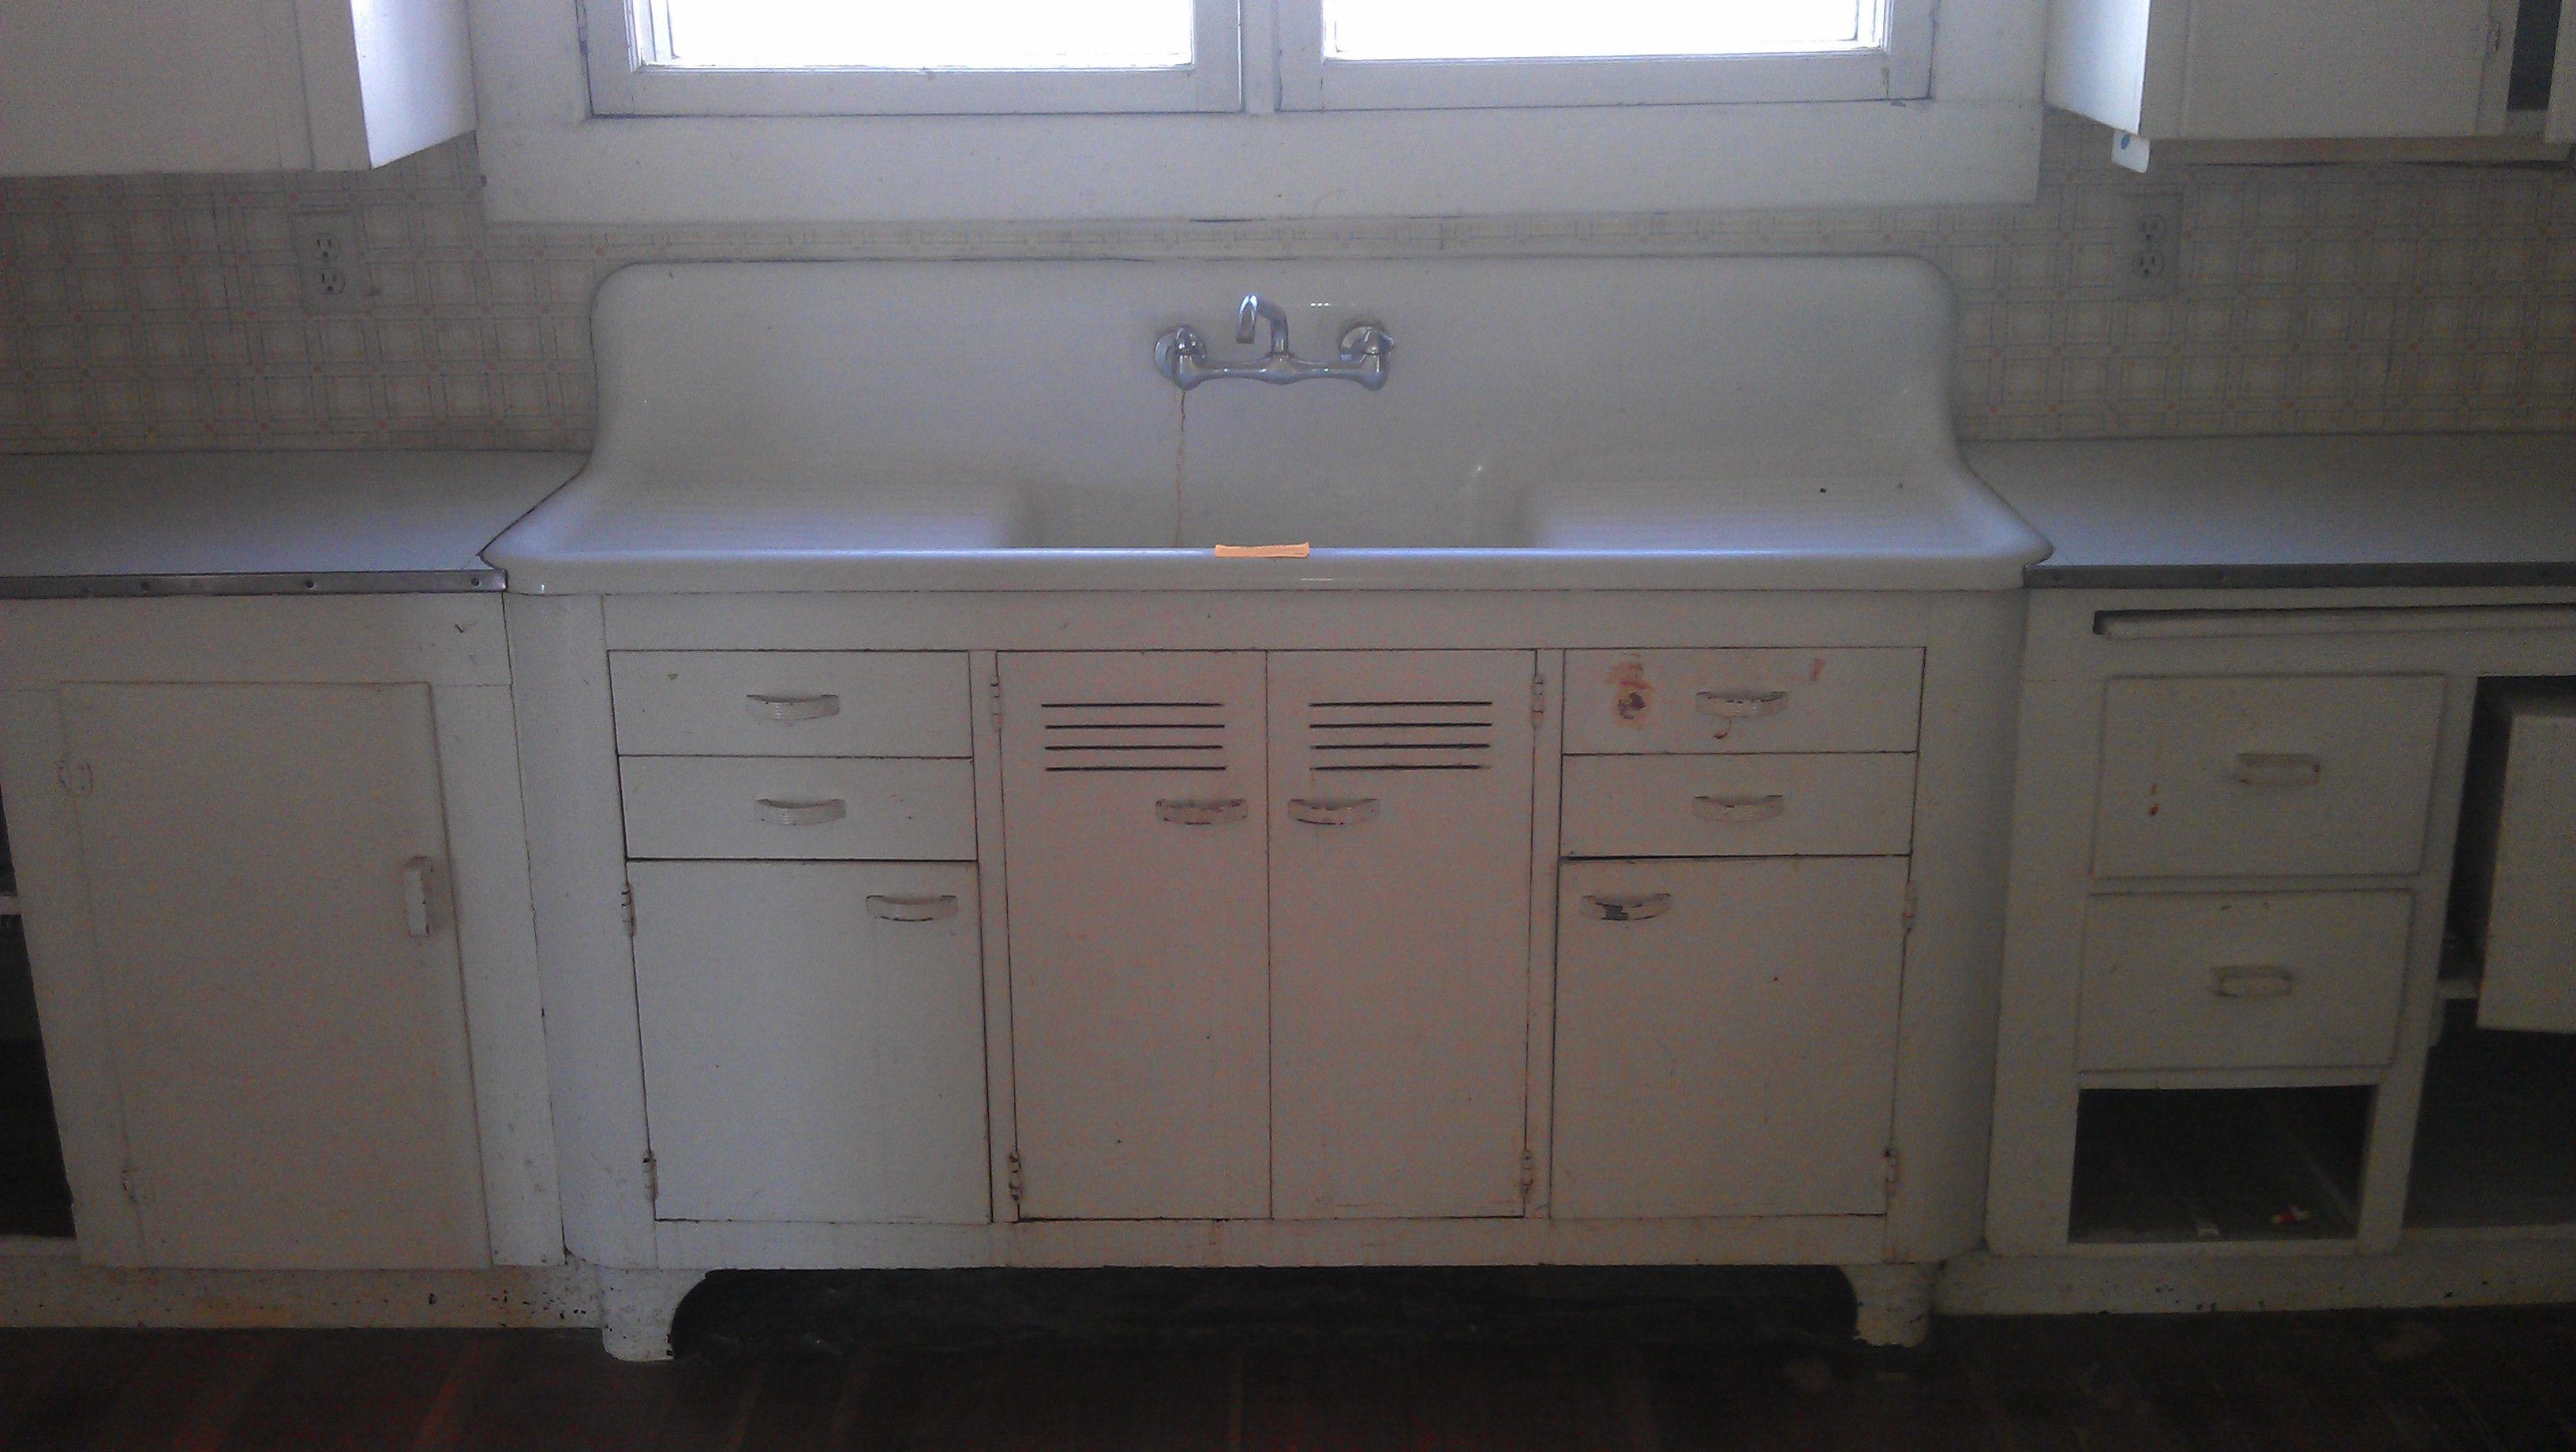 mounted double drain board farm sink vintage single basin double drainboard kitchen sink - Single Or Double Kitchen Sink